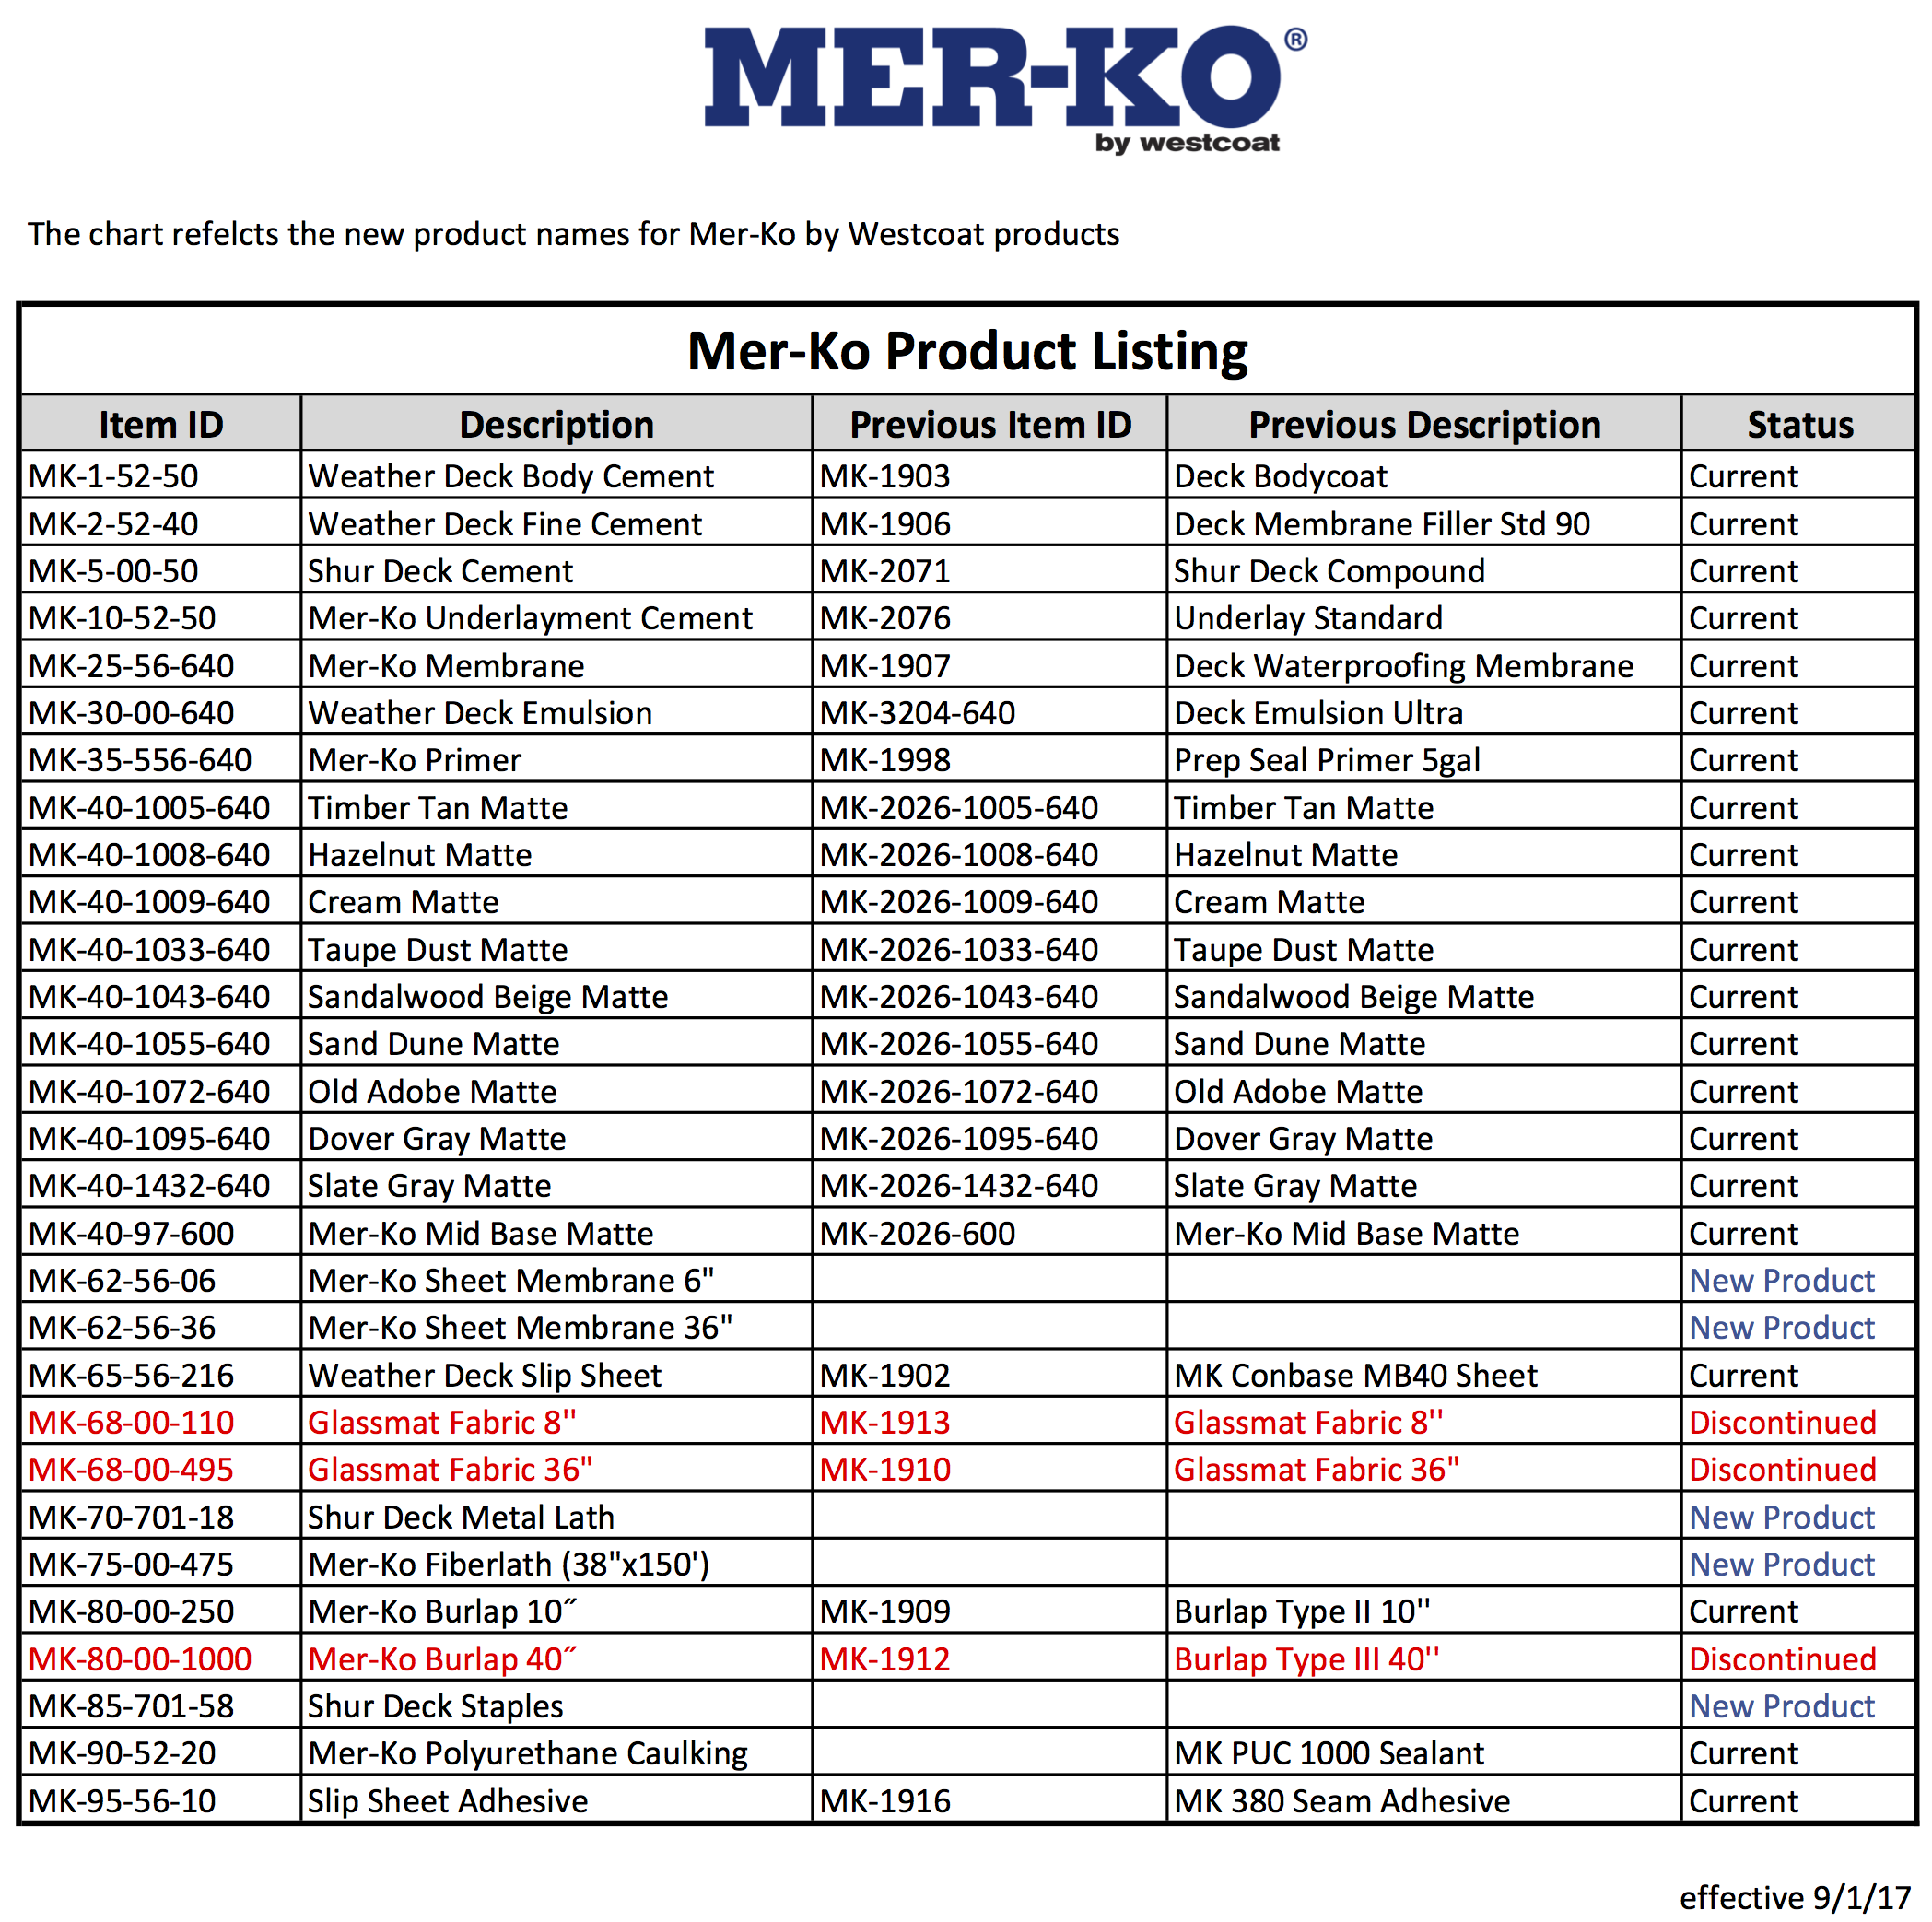 Mer-Ko by Westcoat Waterproof Decking Product List Effective 9/1/2017